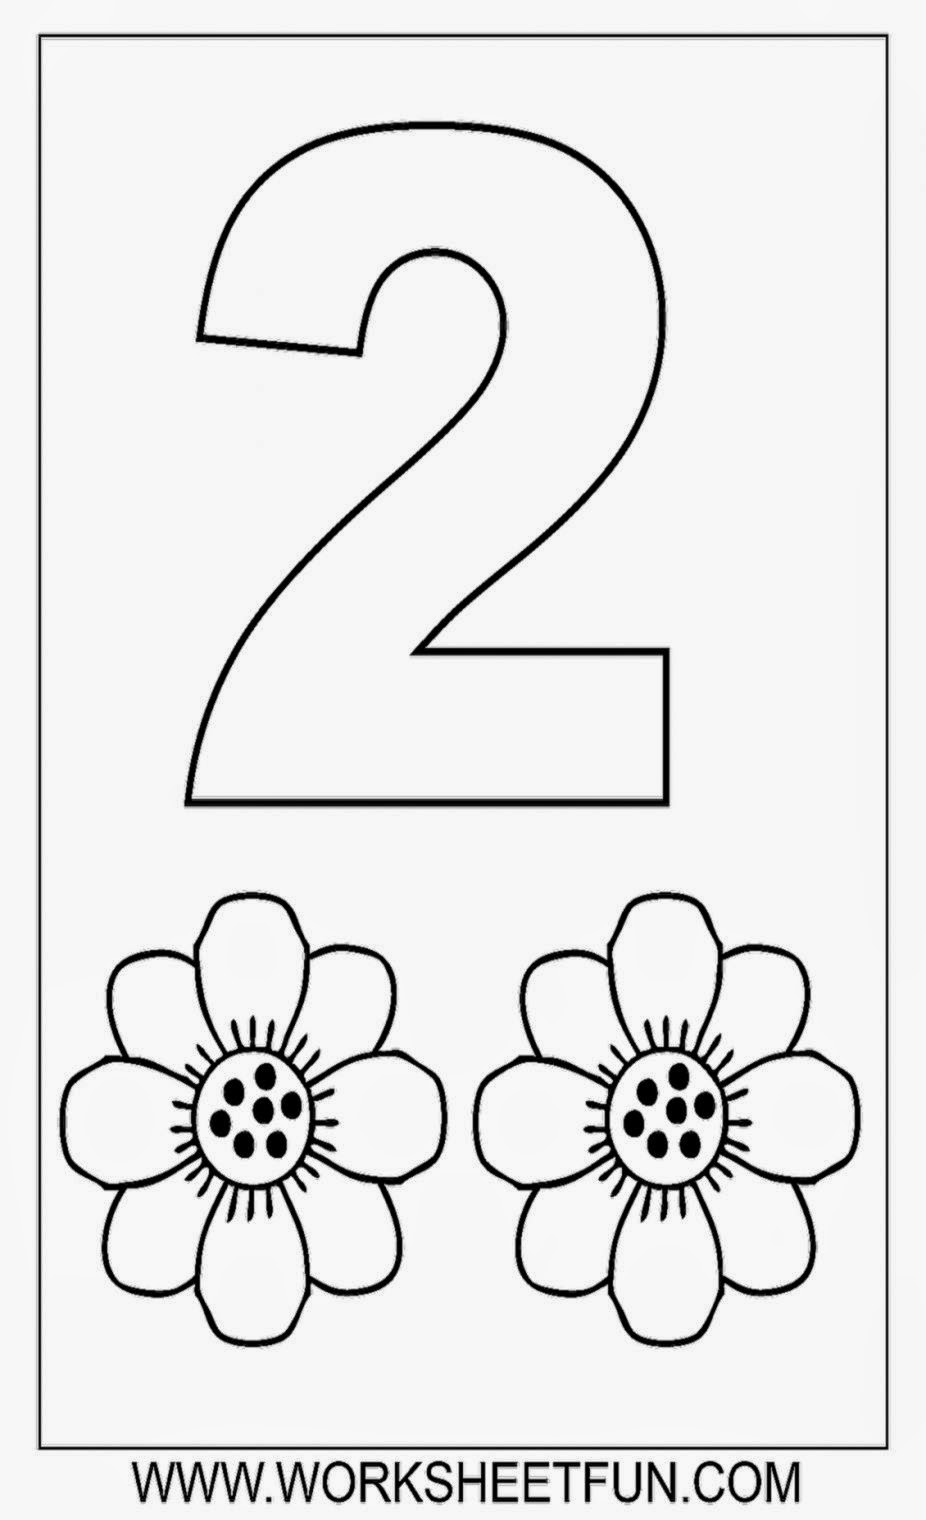 Printable color by number sheets free coloring sheet for Number one coloring page